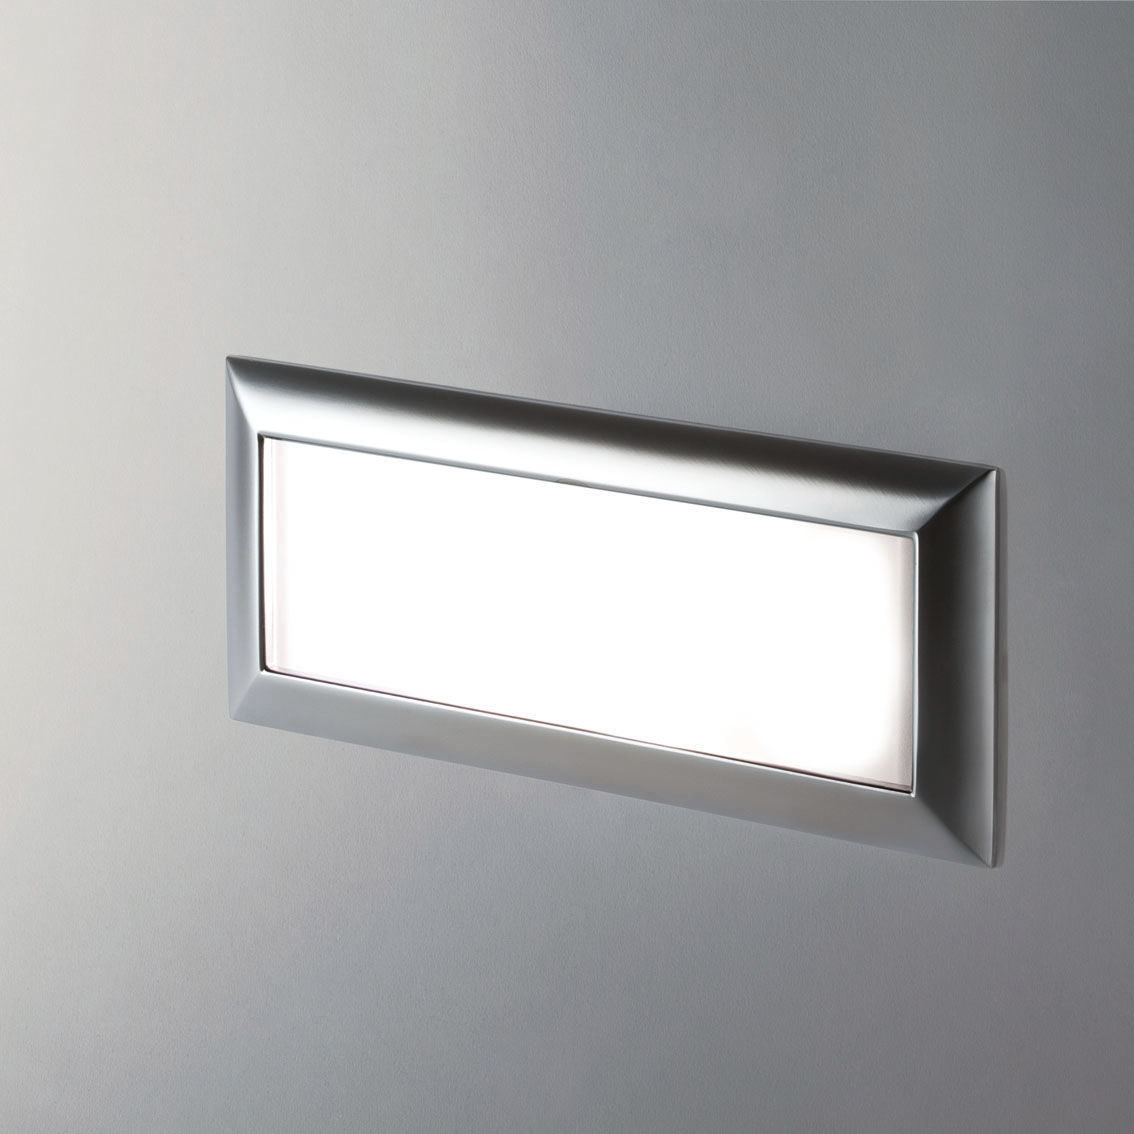 Recessed wall light fixture led cast aluminum ip40 caledos